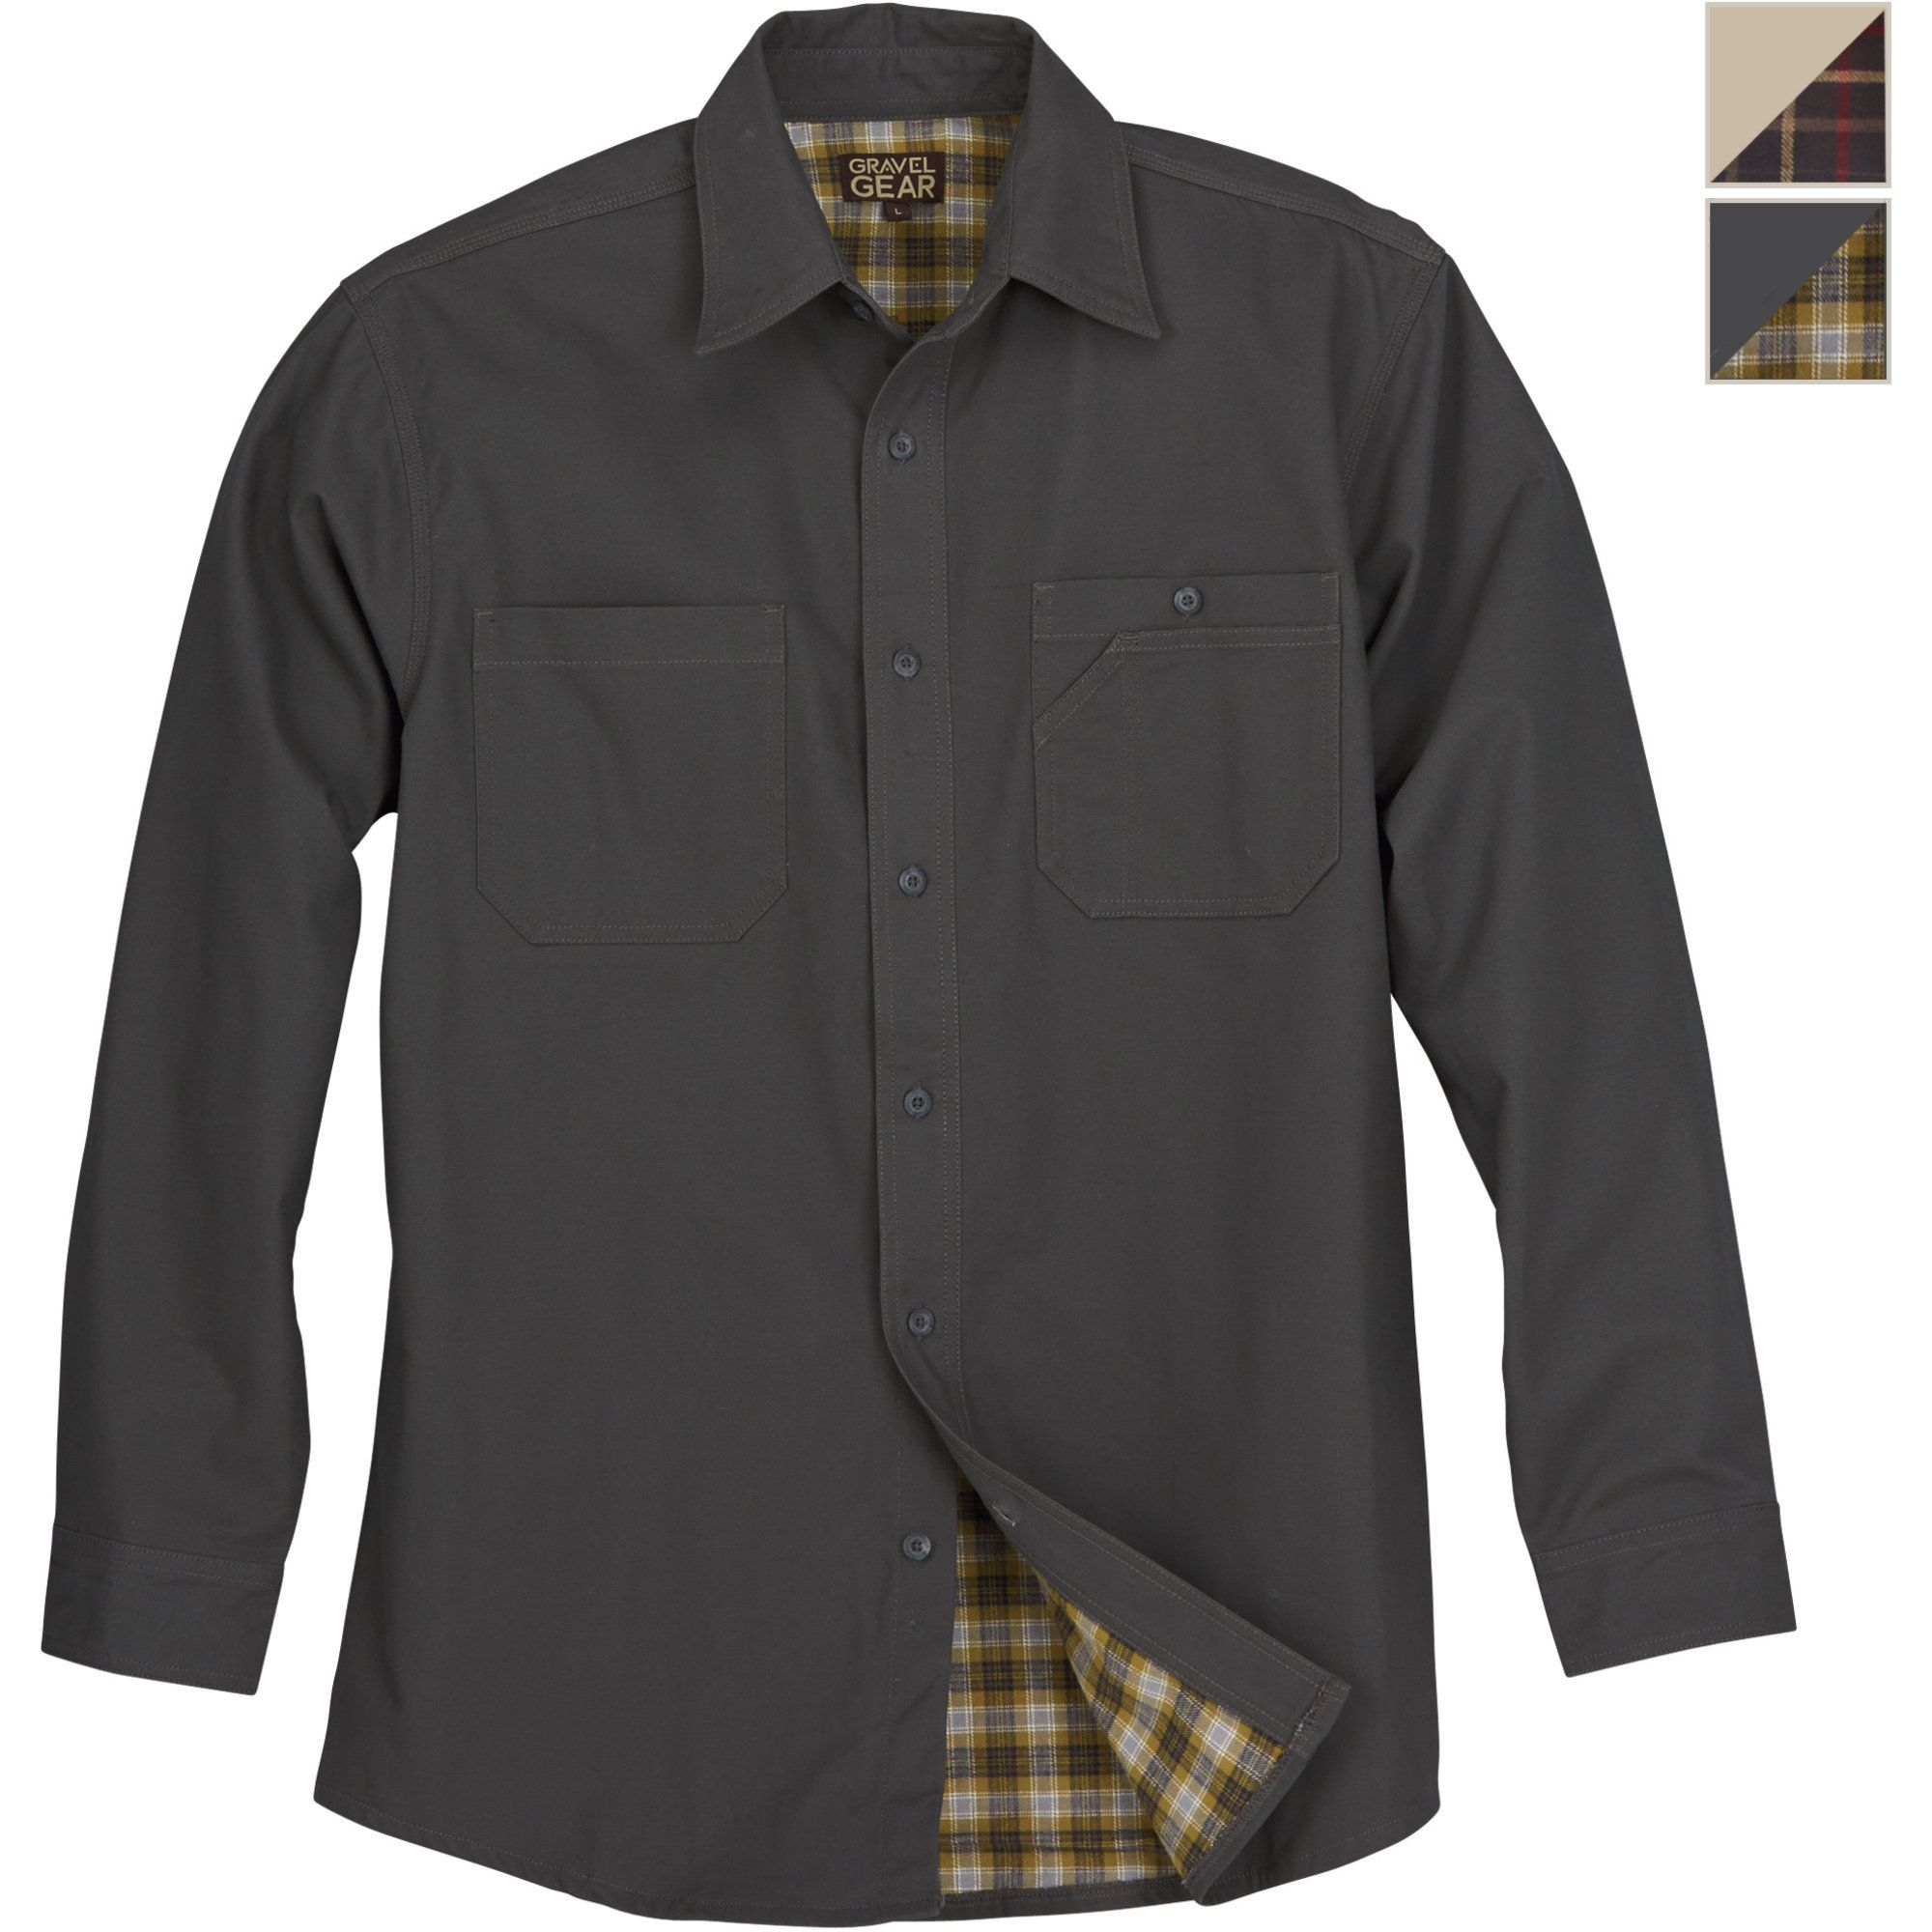 Free Shipping Gravel Gear Flannel Lined Cotton Canvas Shirt Jacket Long Sleeve Button Down Shirts Shirt Jacket Canvas Shirts Shirts